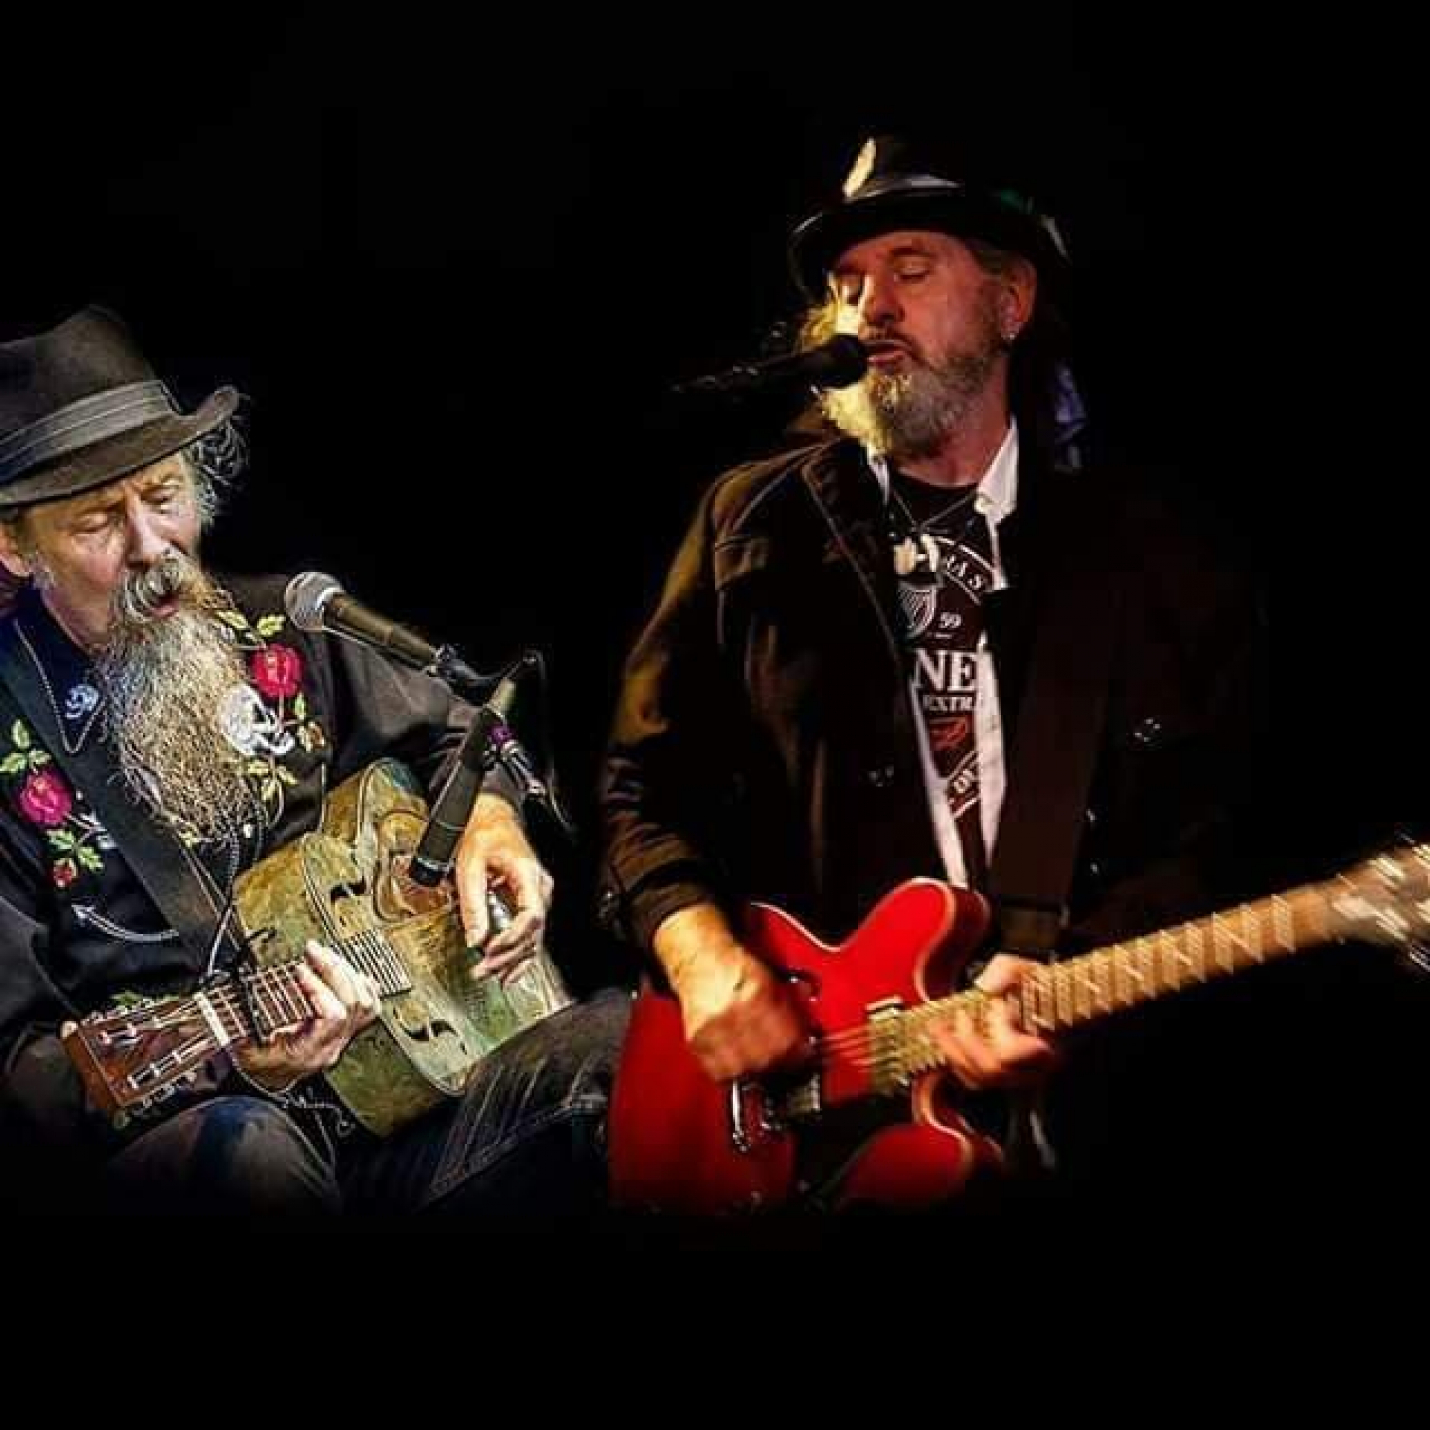 Tim Parr and Doc Maclean Head to Durban and Pietermaritzburg